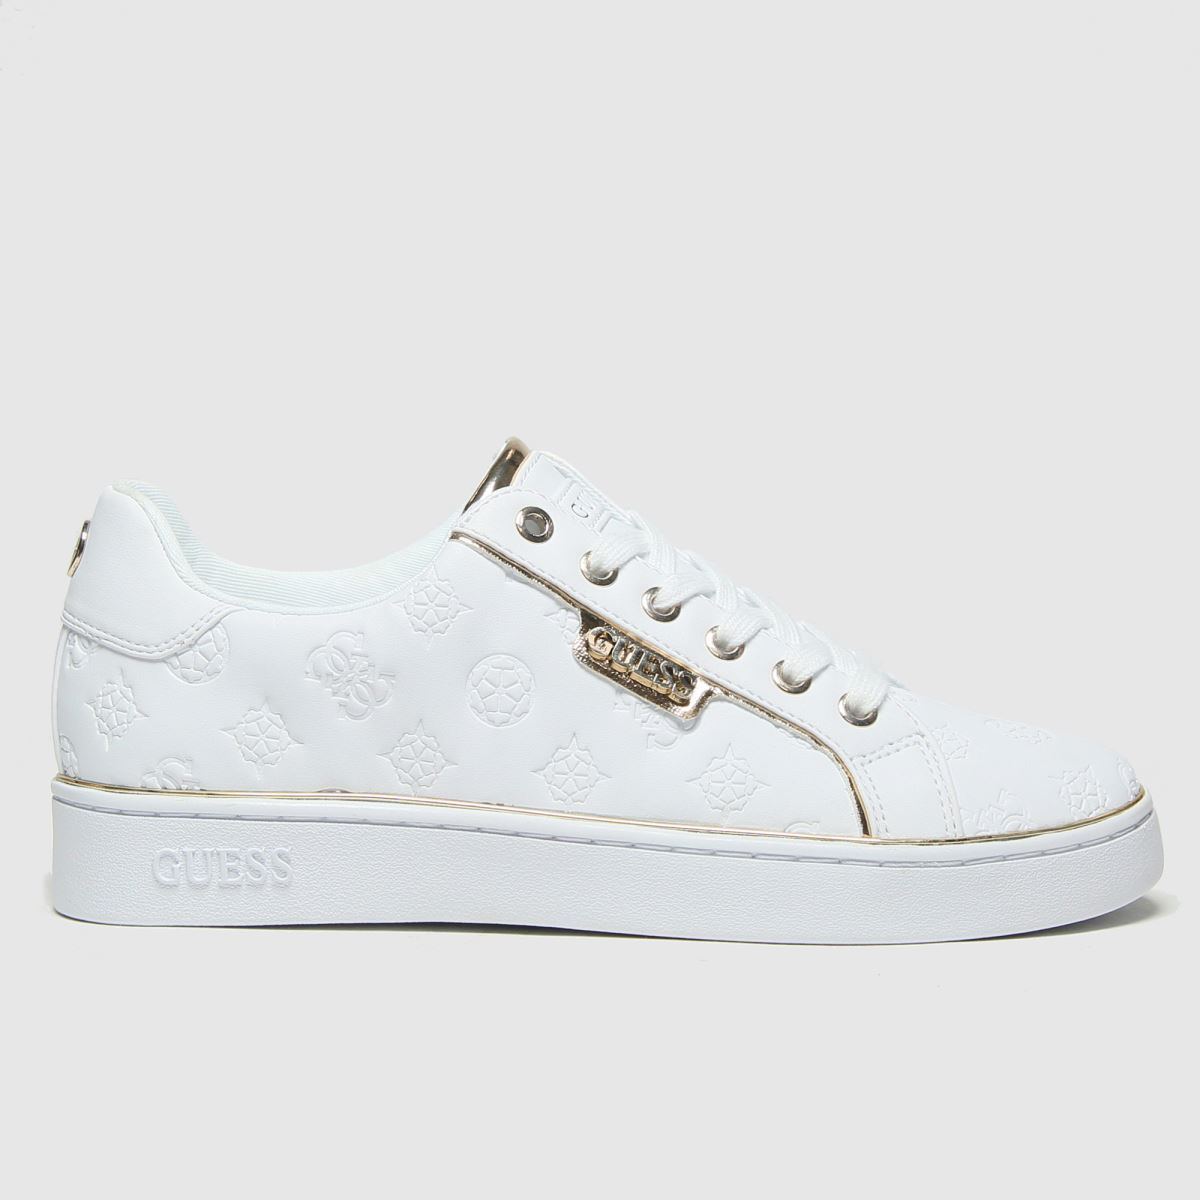 GUESS White Banq Trainers